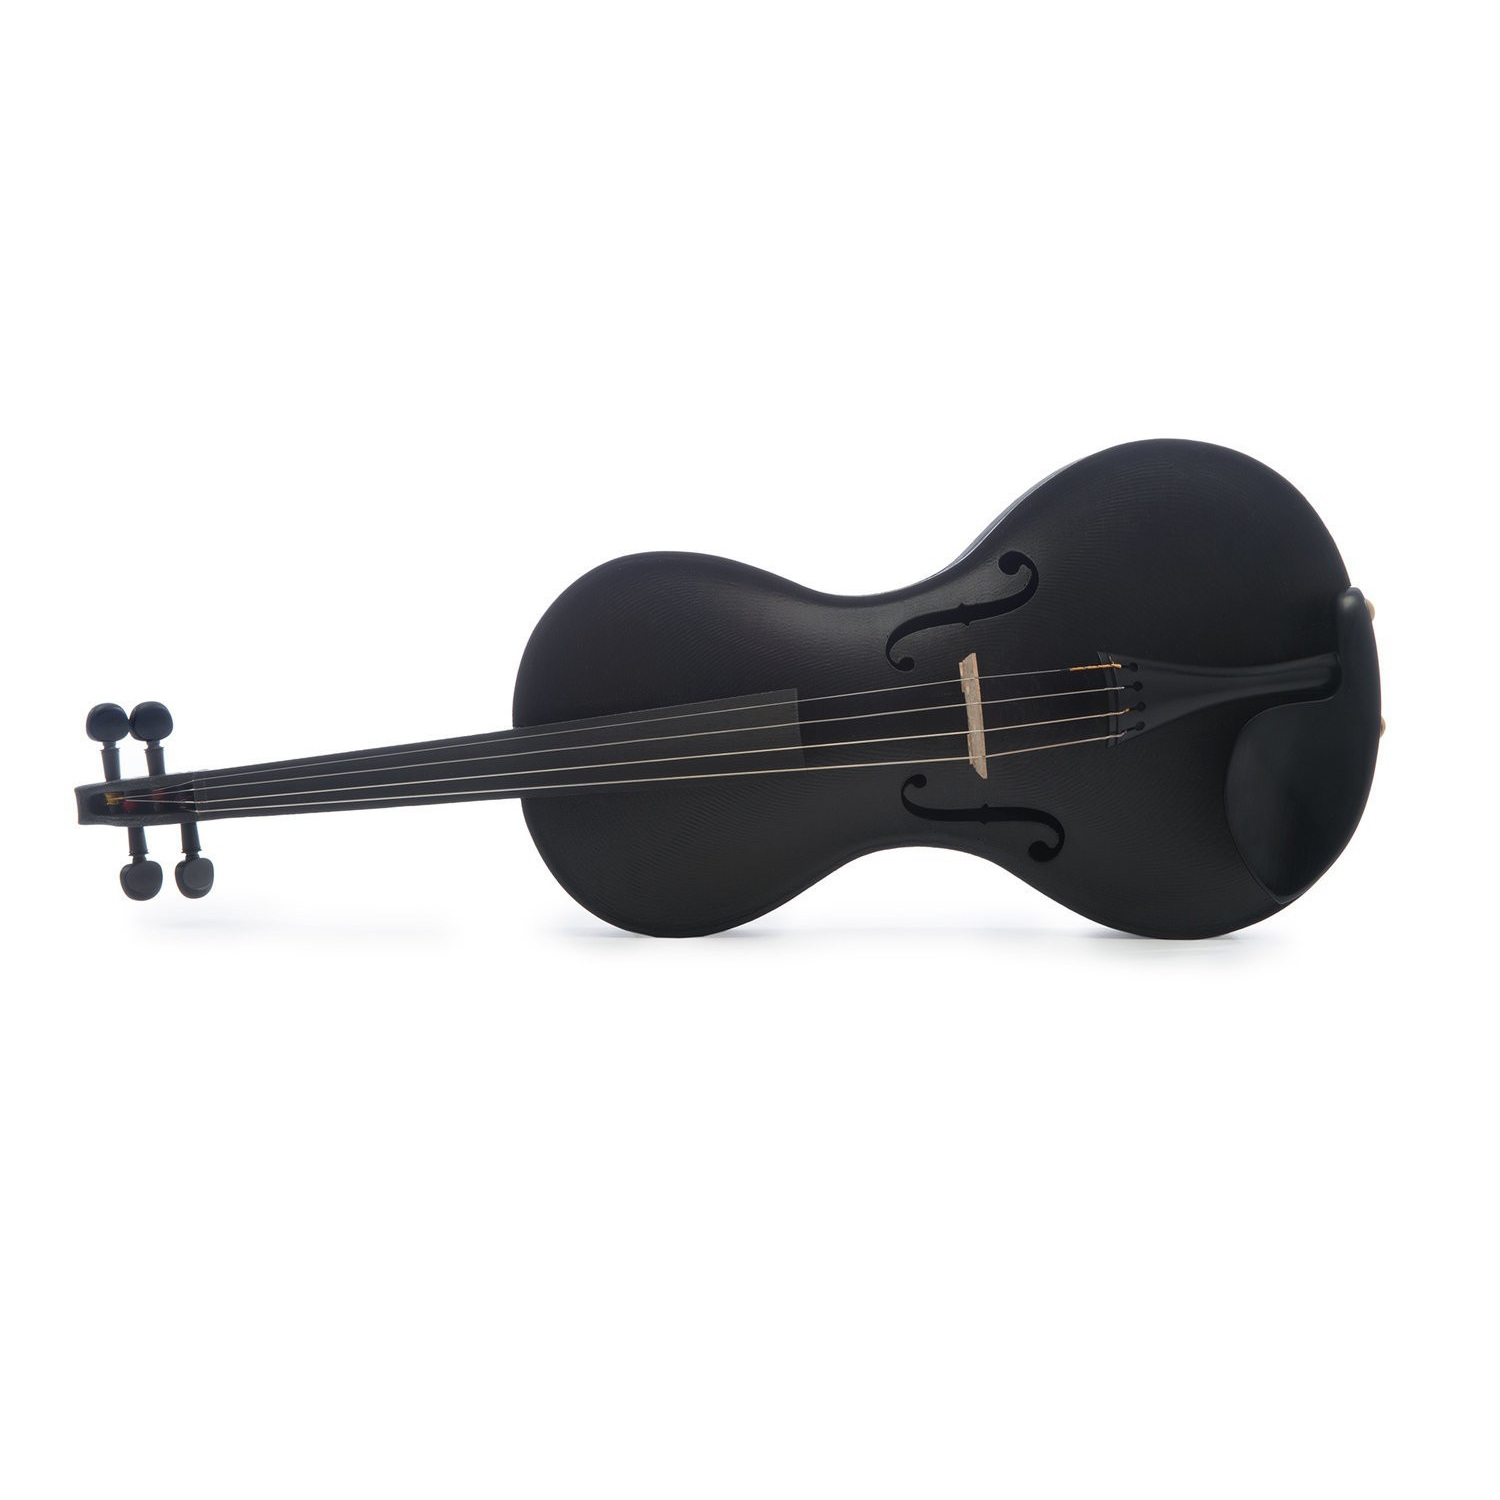 Violin-3D-Printing-Cults-STL-3D-fils.png Download free STL file 3D printed Violin • VLNLAB: VLN (Violin 4/4) • Model to 3D print, VLNLAB